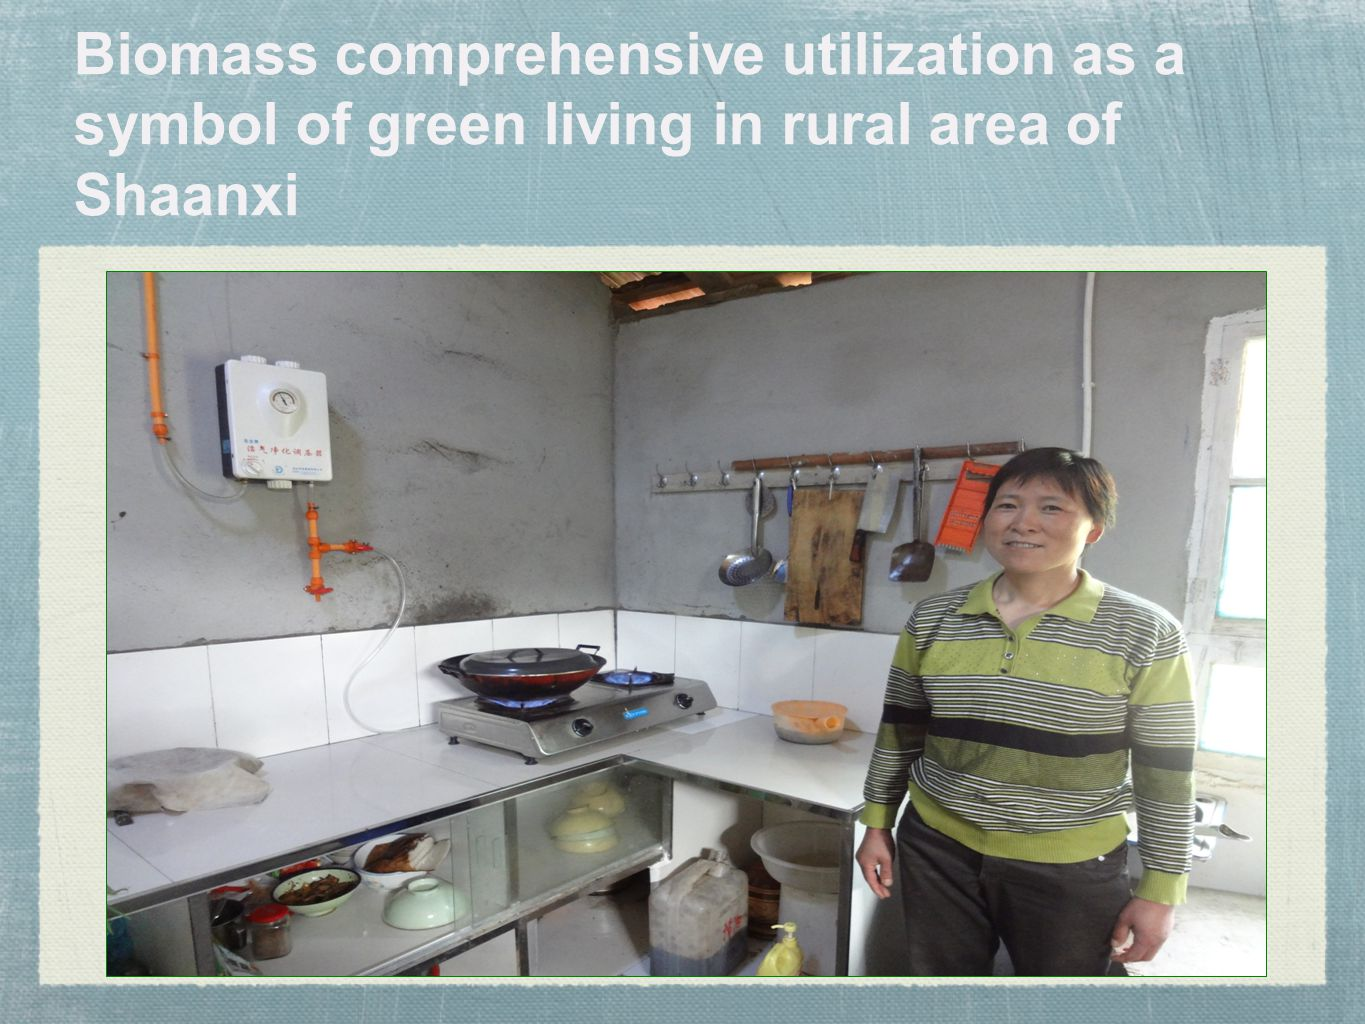 Biomass comprehensive utilization as a symbol of green living in rural area of Shaanxi